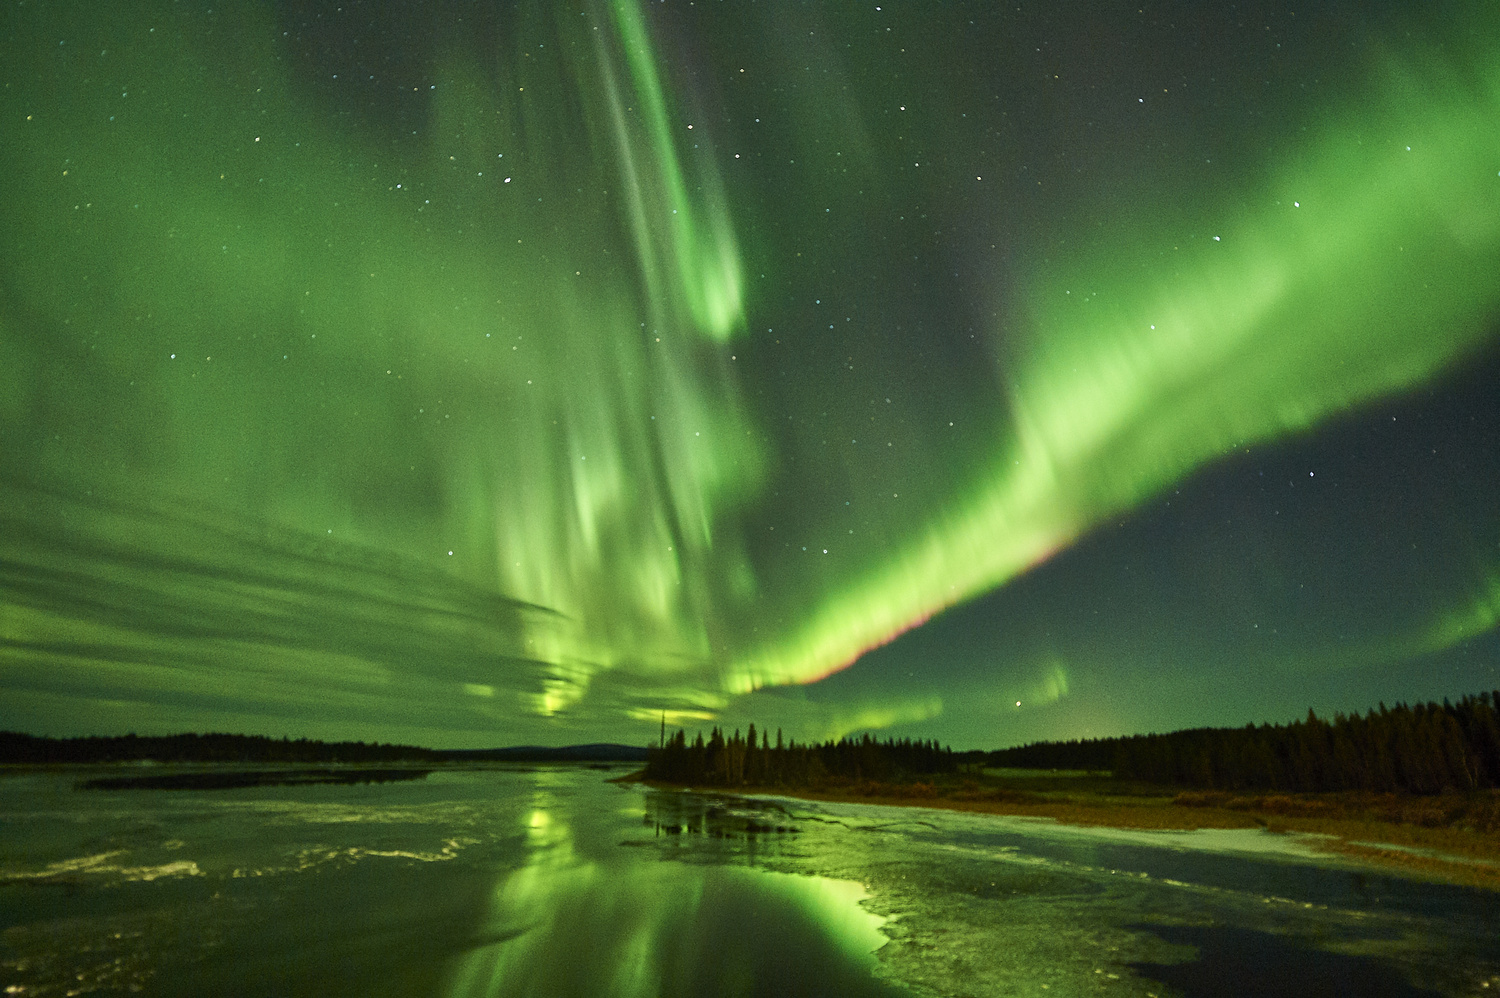 Aurora Borealis at Lappeasuando by Tommy Galskjær